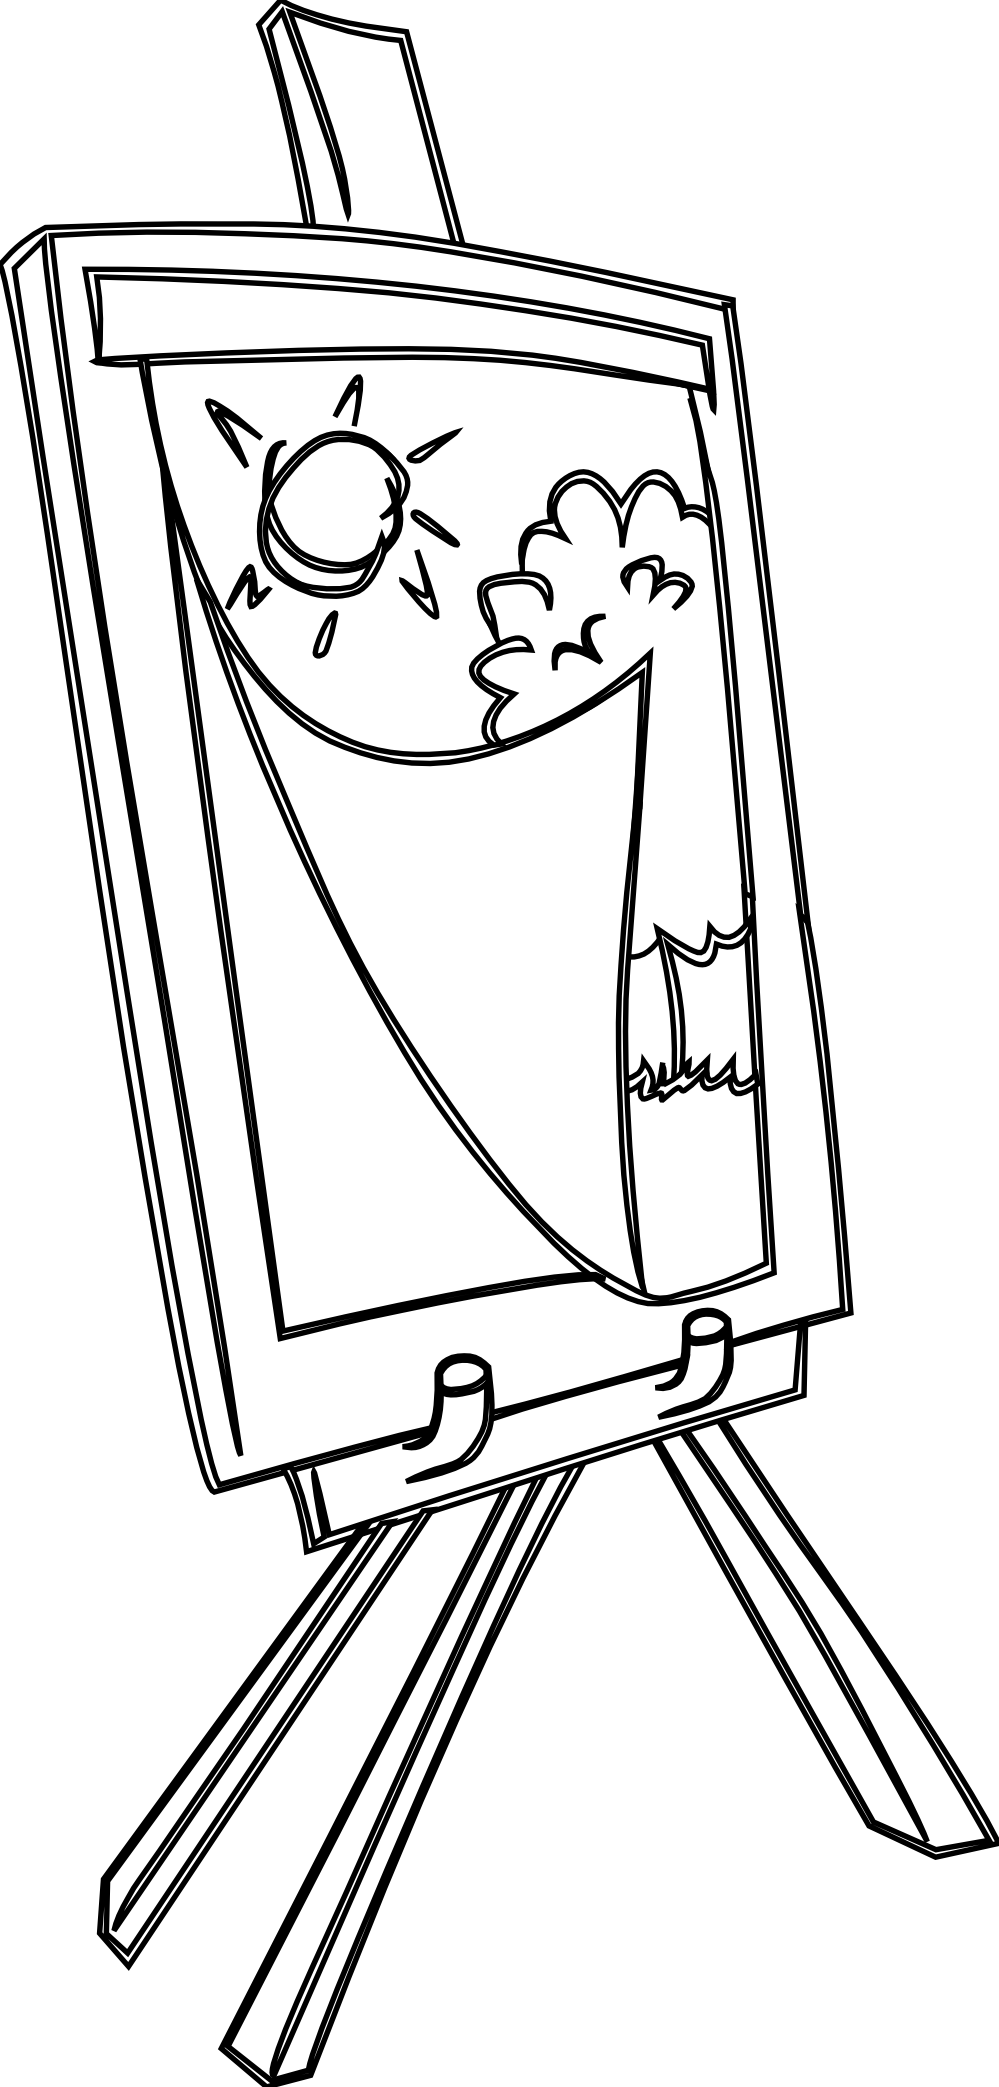 Painter clipart easel board. For drawing at getdrawings